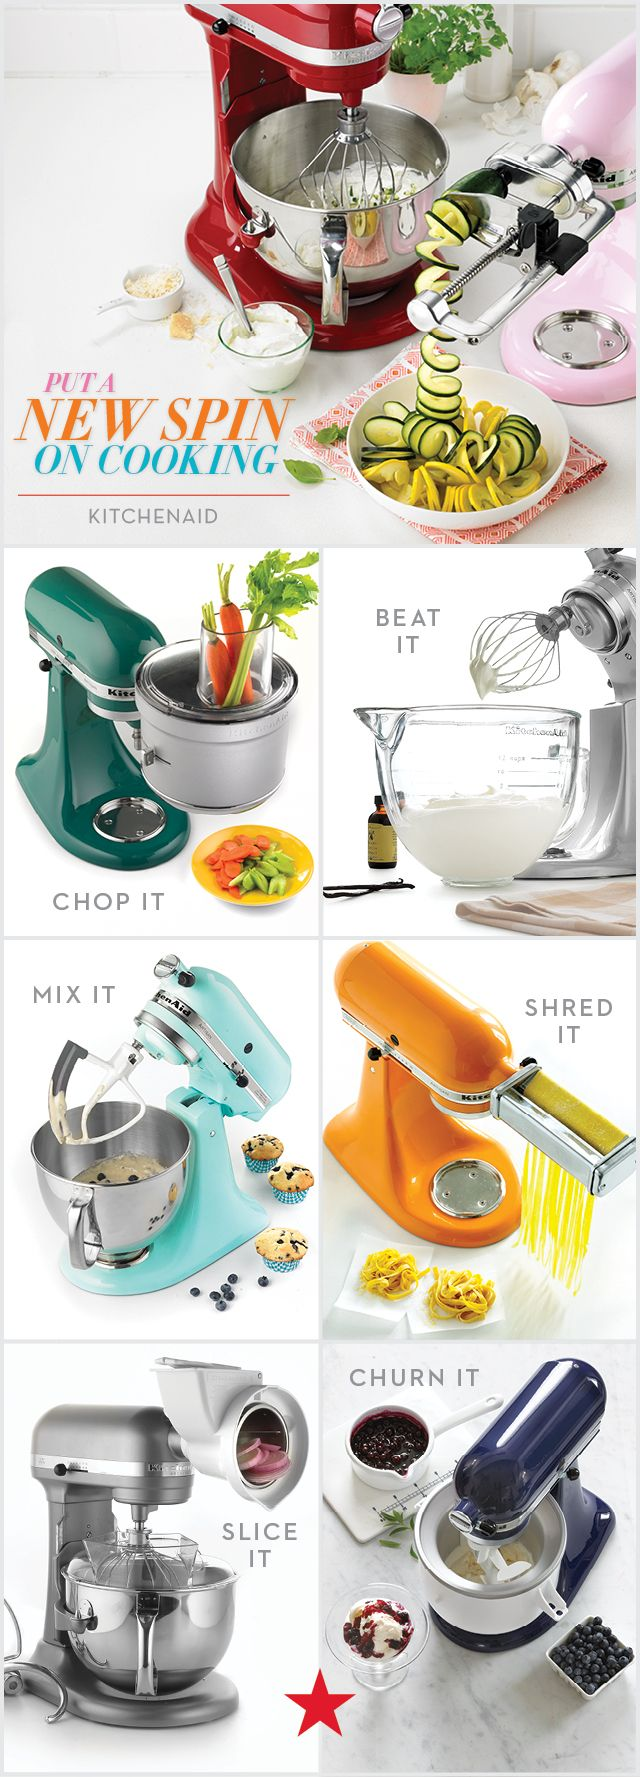 Whether you're slicing, shredding, or chopping it up, the KitchenAid professional stand mixer has all the attachments you need for a season full of fresh, new homemade favorites.